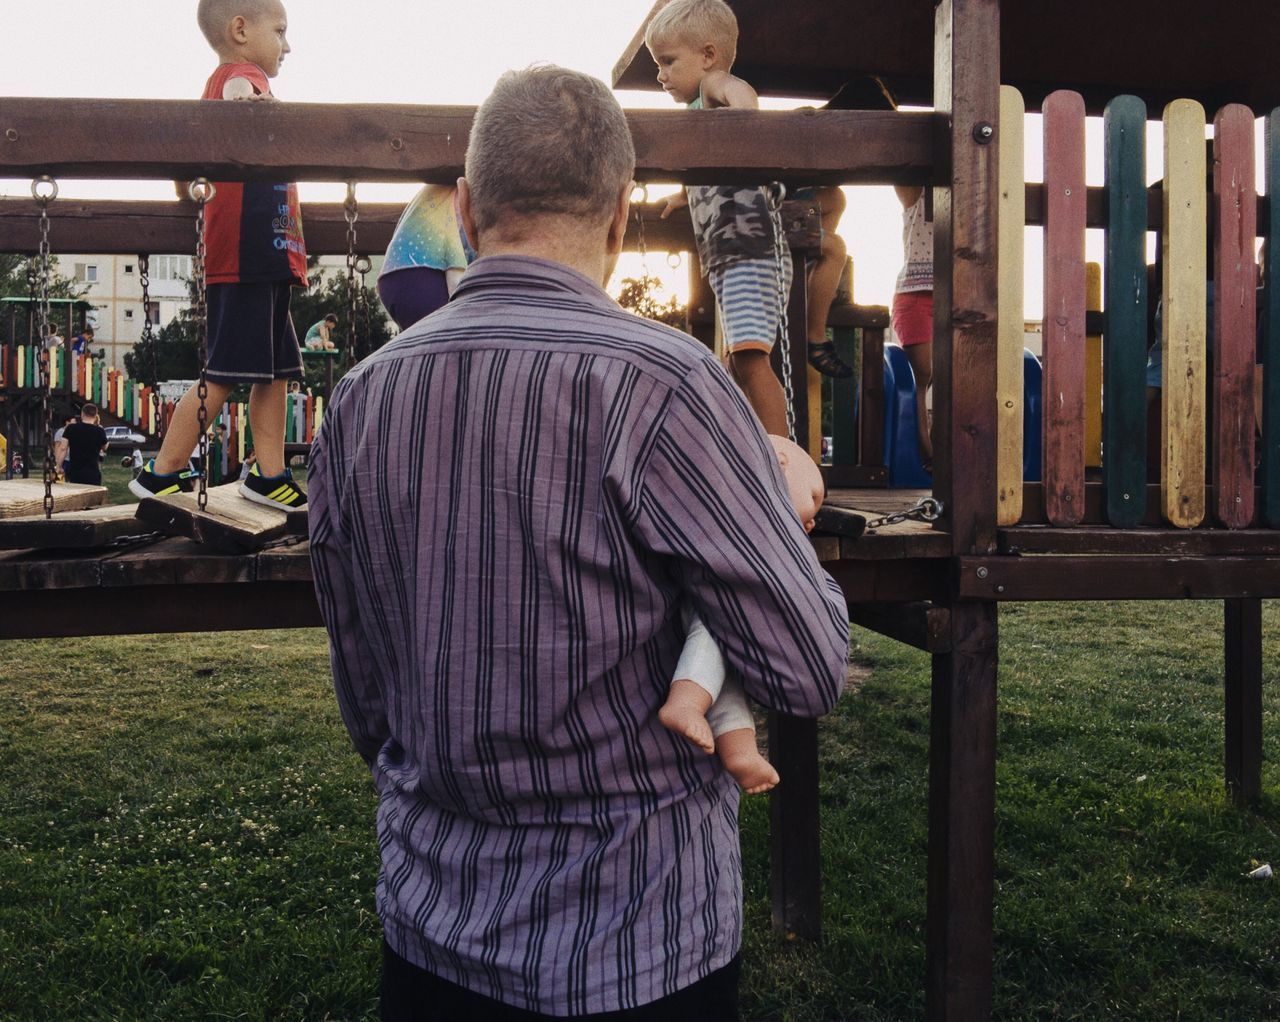 Puppeteer... Rear View Standing People Outdoors Made In Romania VSCO Details Of My Life City Life Lifestyles Street Life City Urban Street Playground Childhood Grandpa Puppet Park Playing Playtime Summer Having Fun Holding Kids Playing Children